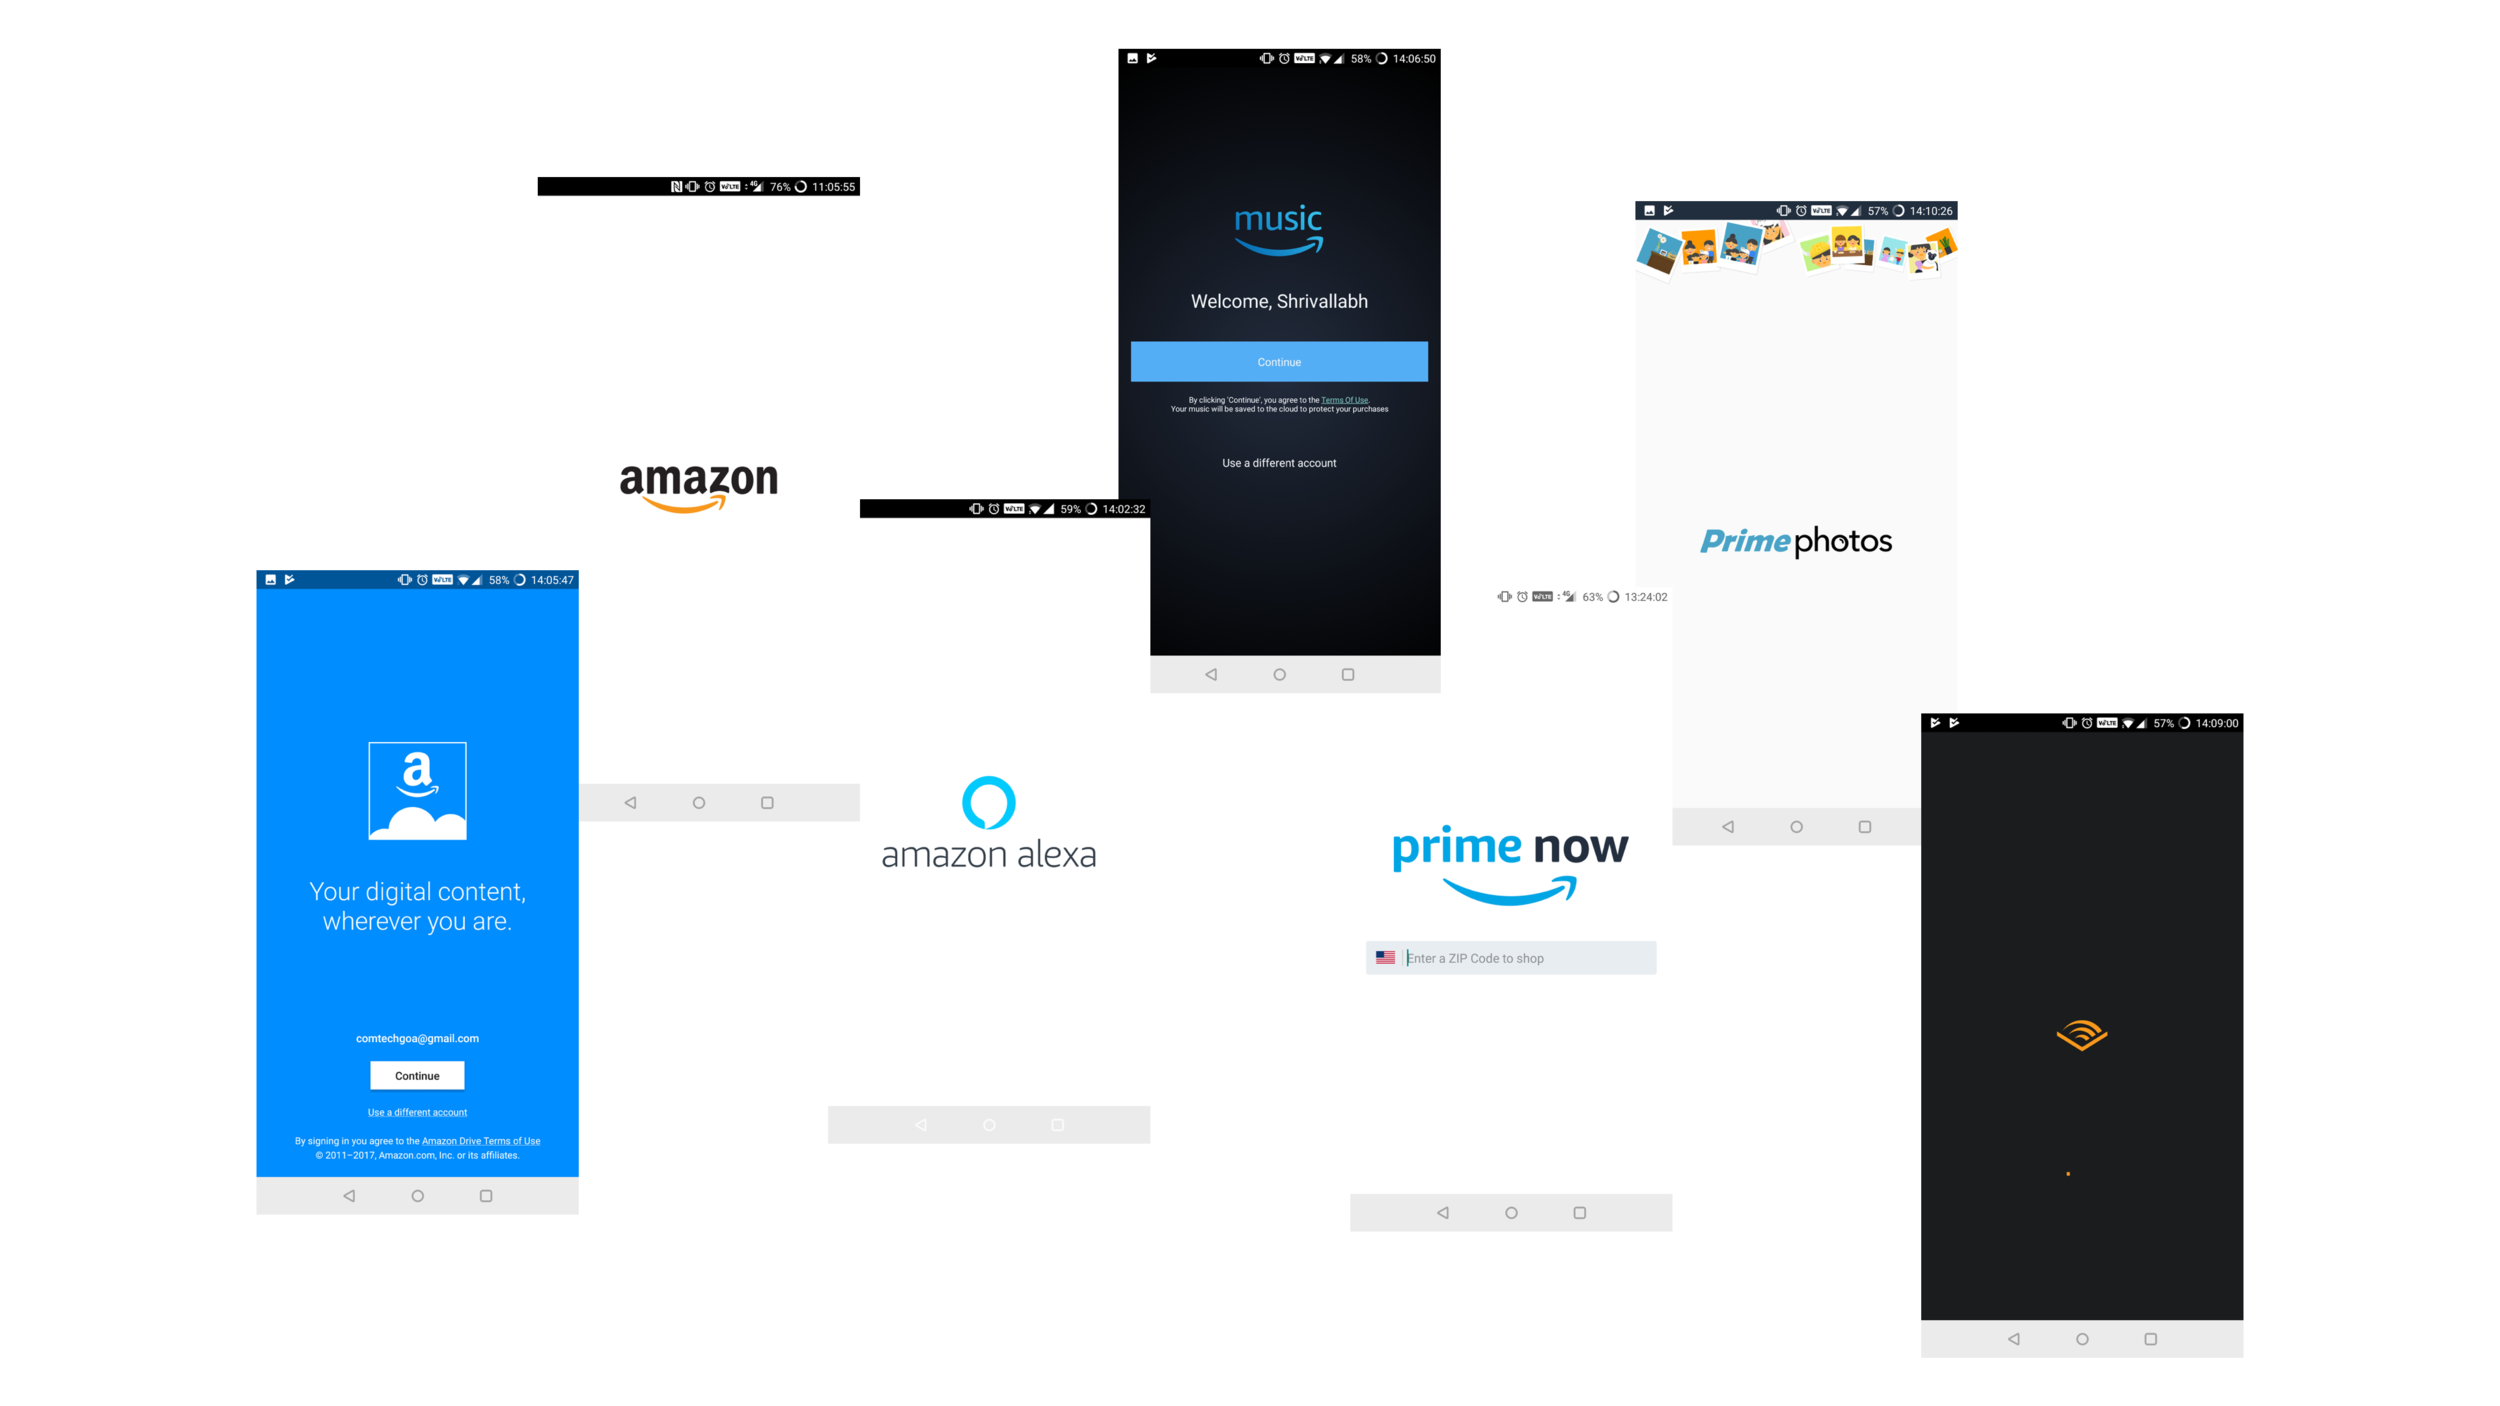 A hodgepodge of brands - Amazon has a laundry list of sub-brands, sewn together by the Amazon name. But the logos, typography, graphic style and color palette of each sub-brand is different and incoherent.